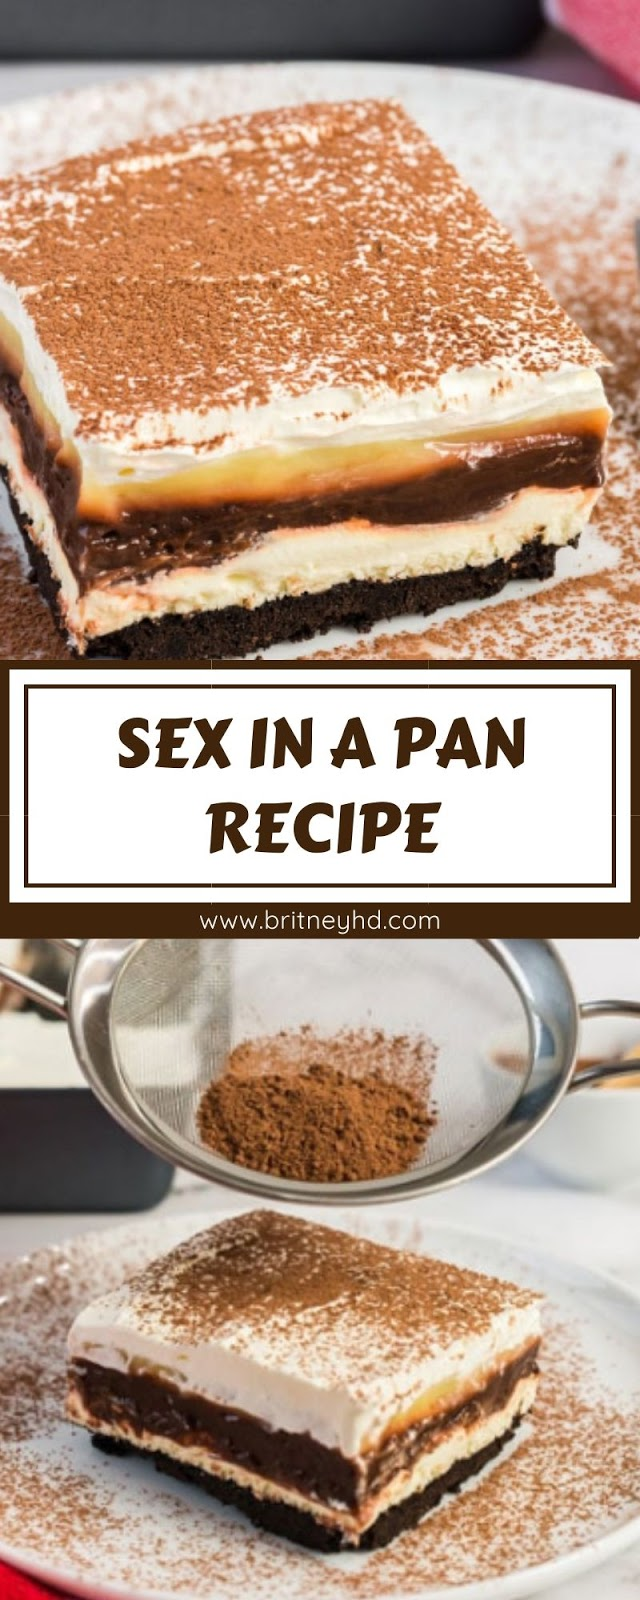 SEX IN A PAN RECIPE